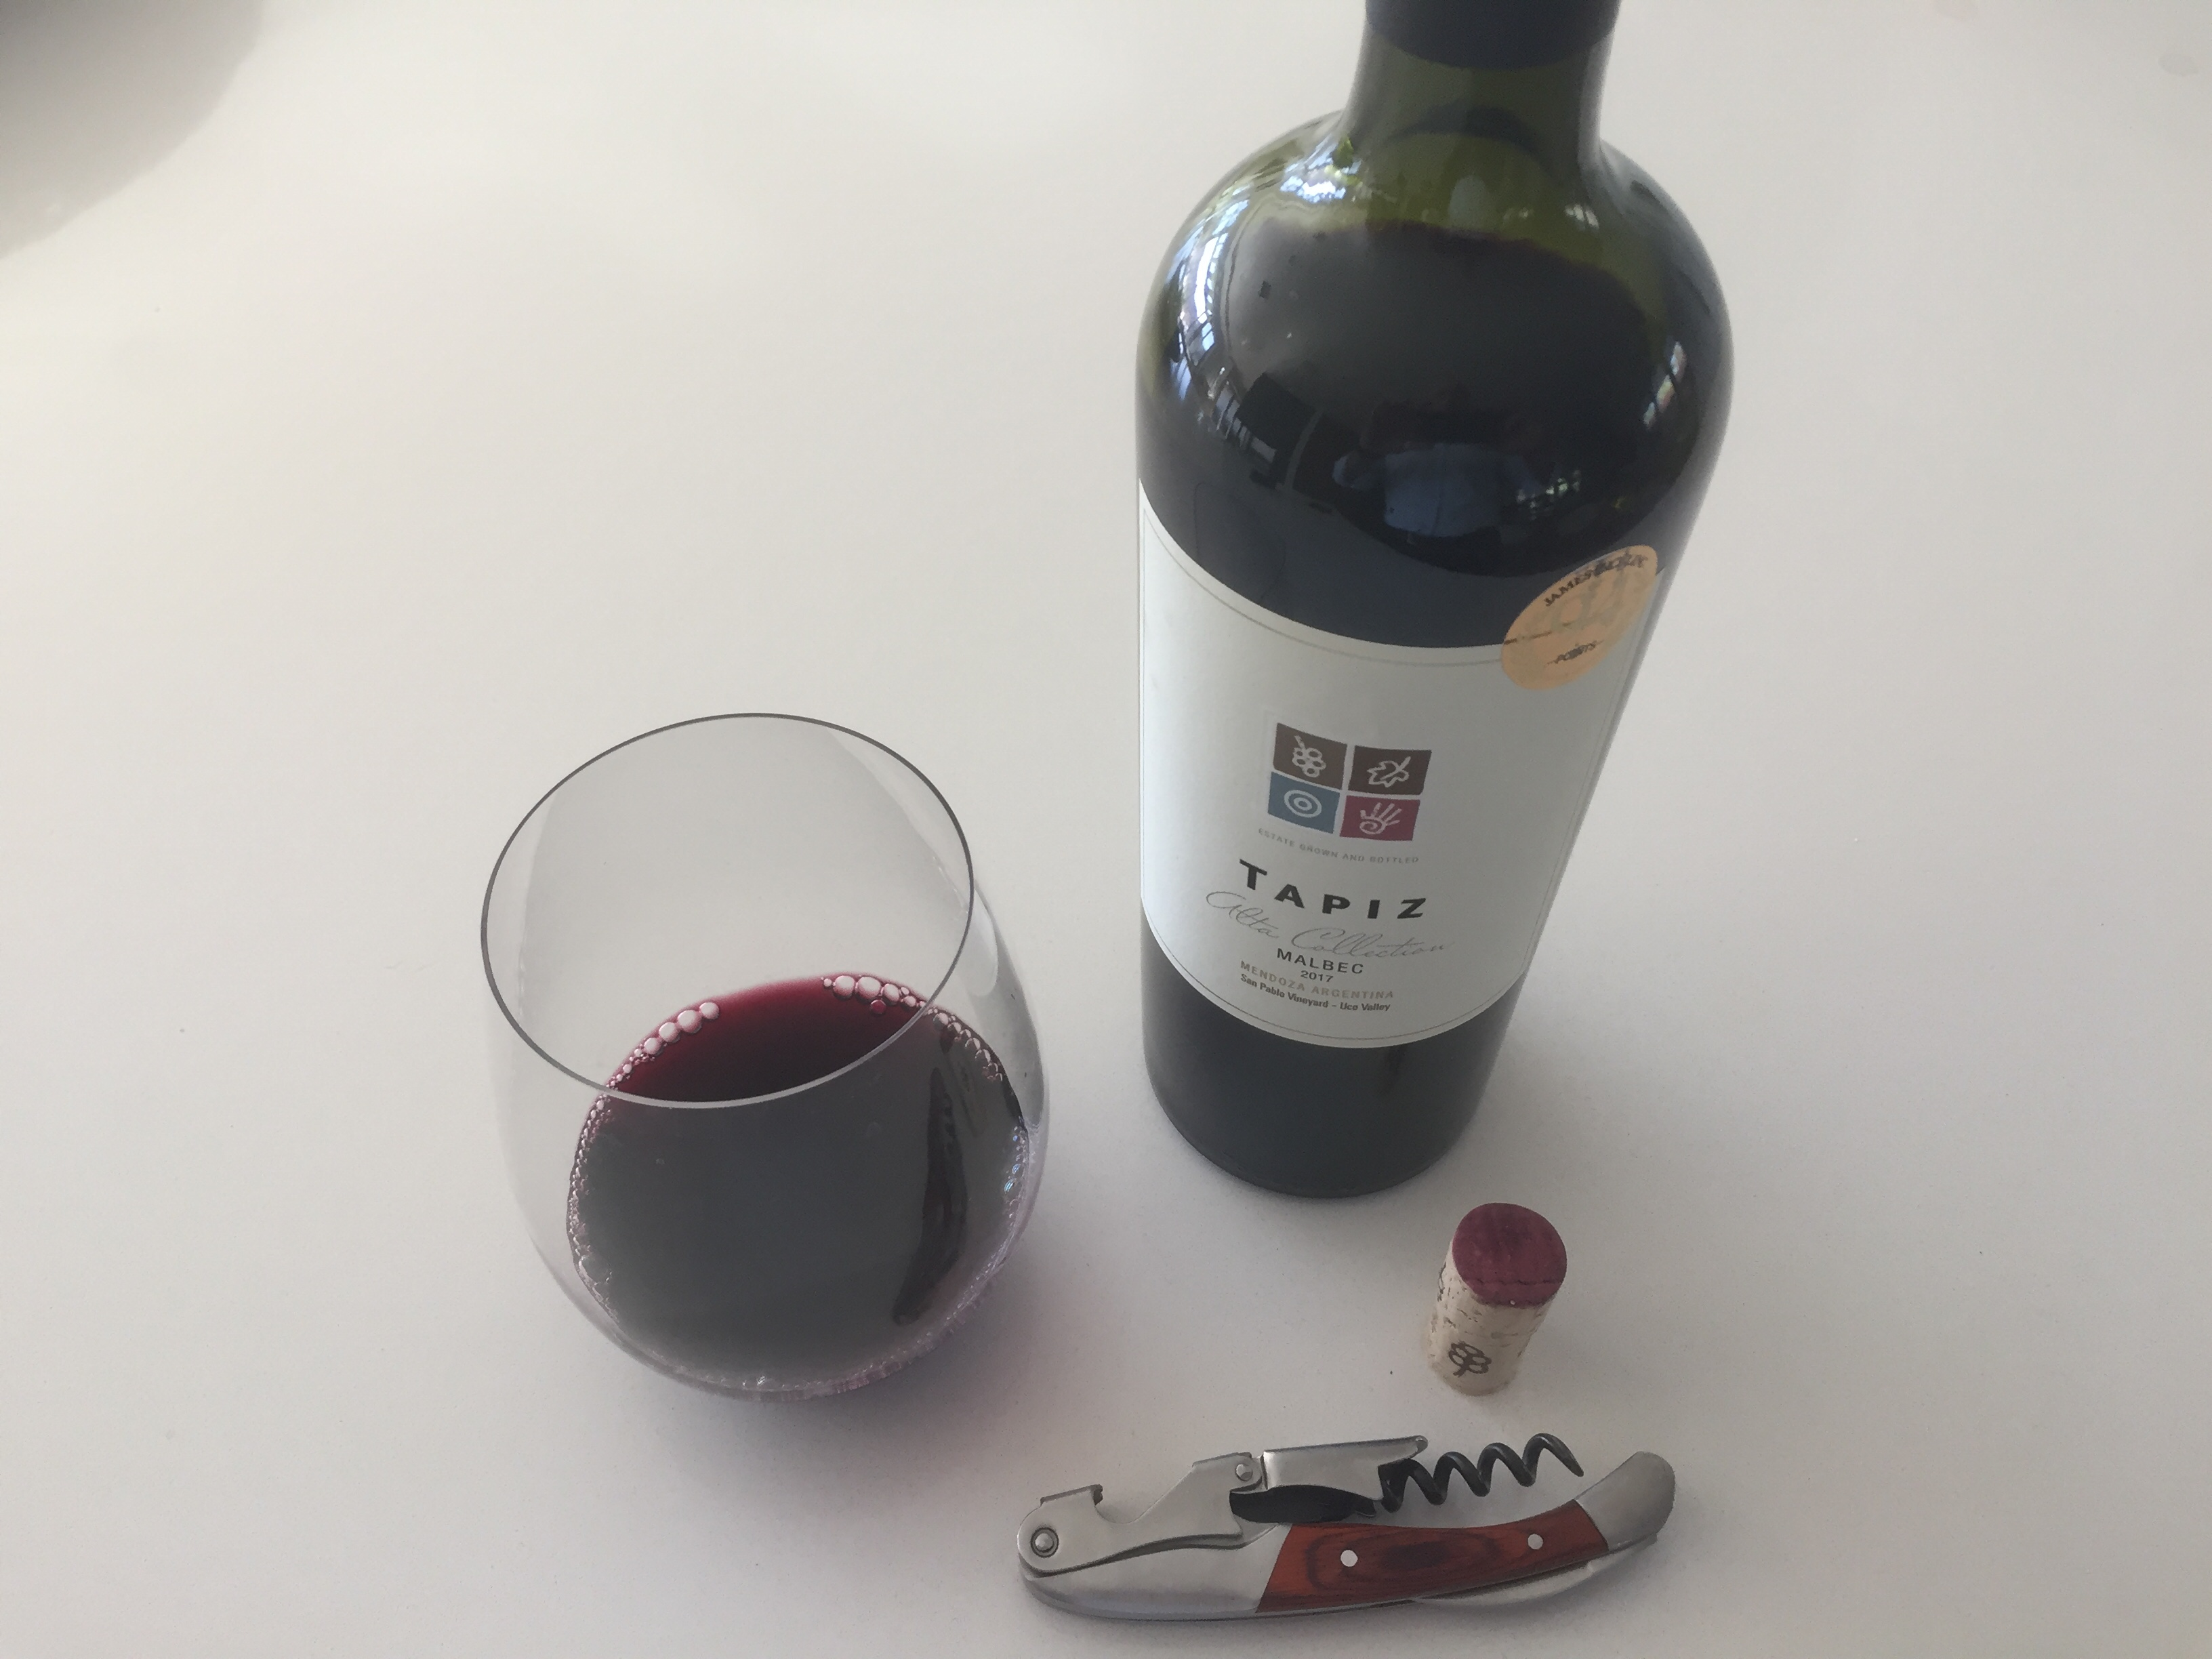 Photo of bottle and glass of Tapiz 2017 Malbec - $13.99 at Costco